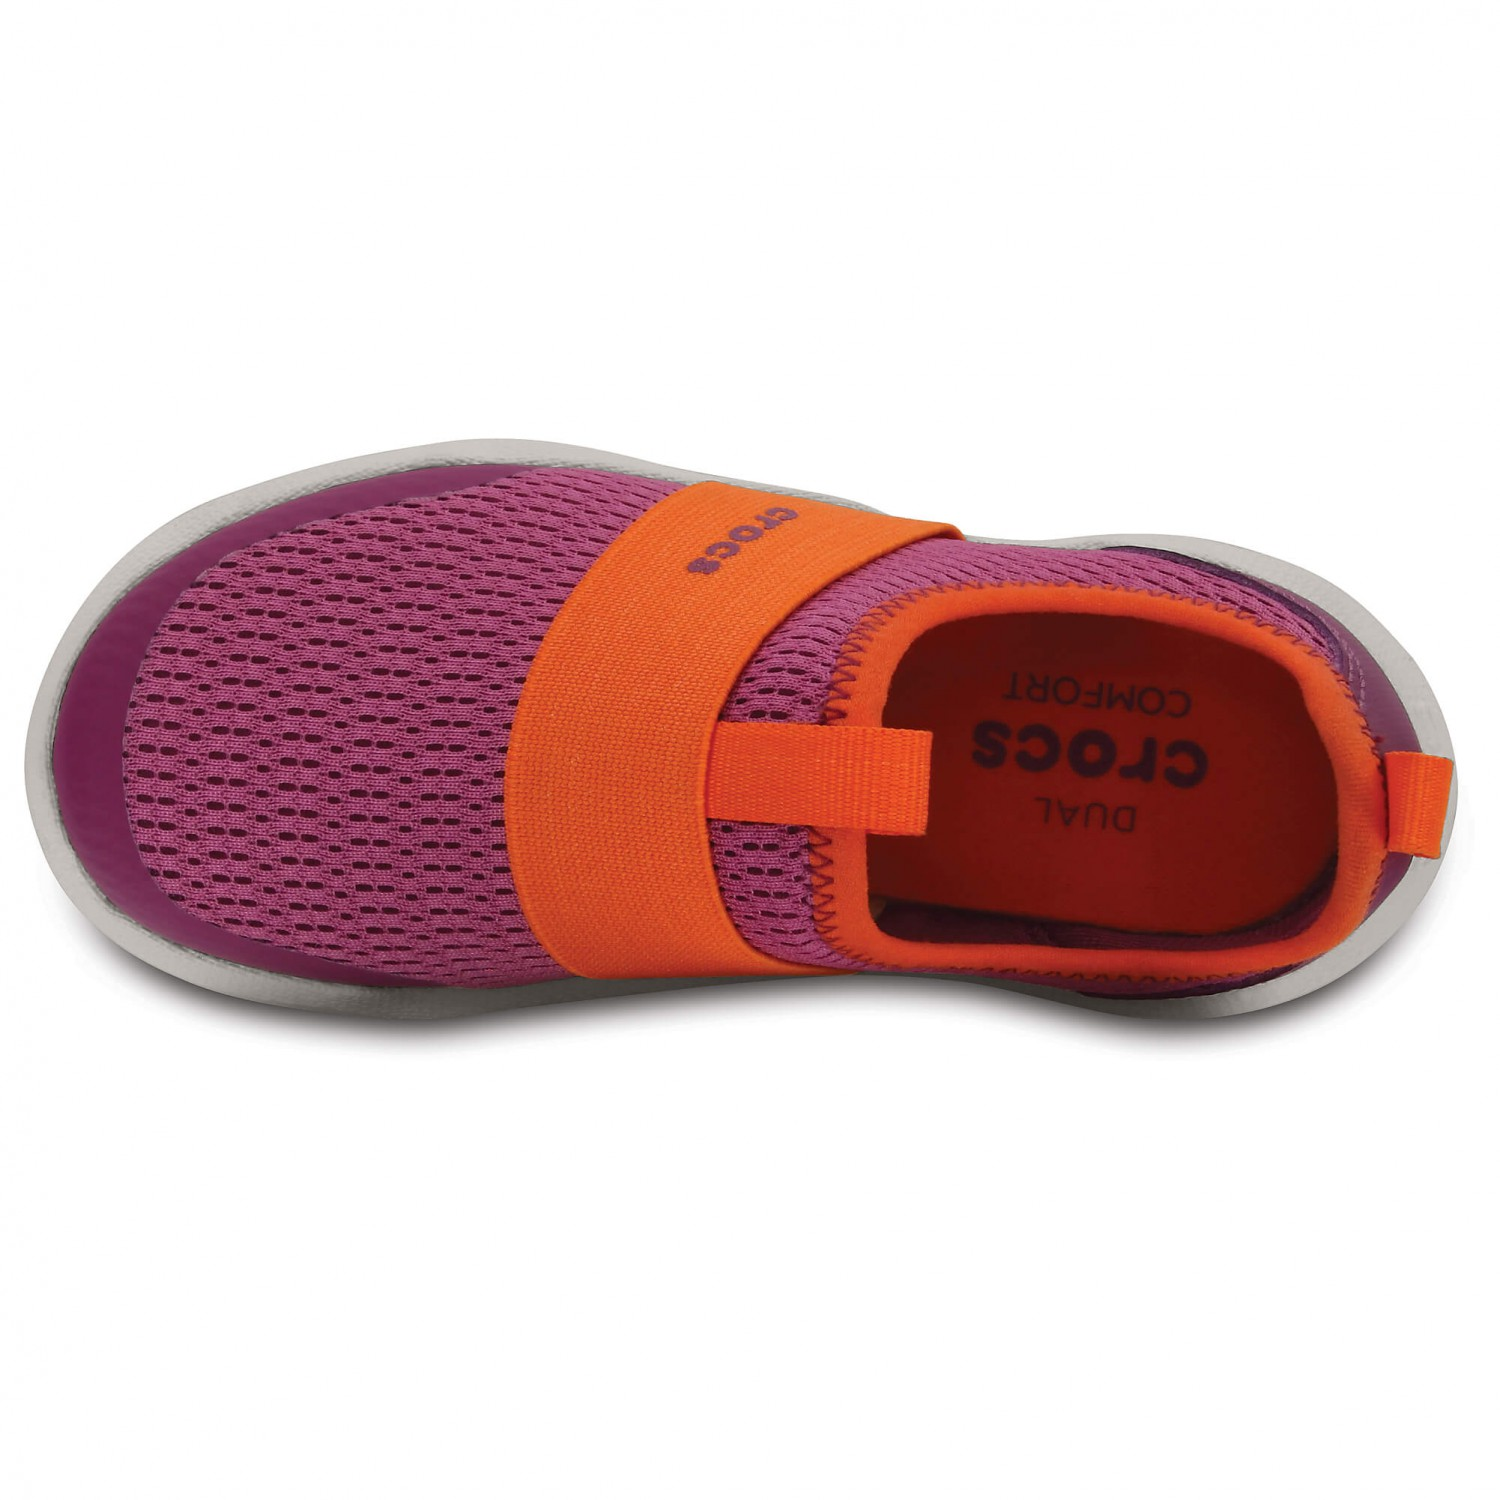 c8e8687f0dfc ... Crocs - Kid s Swiftwater Easy-On Shoe - Sandals ...